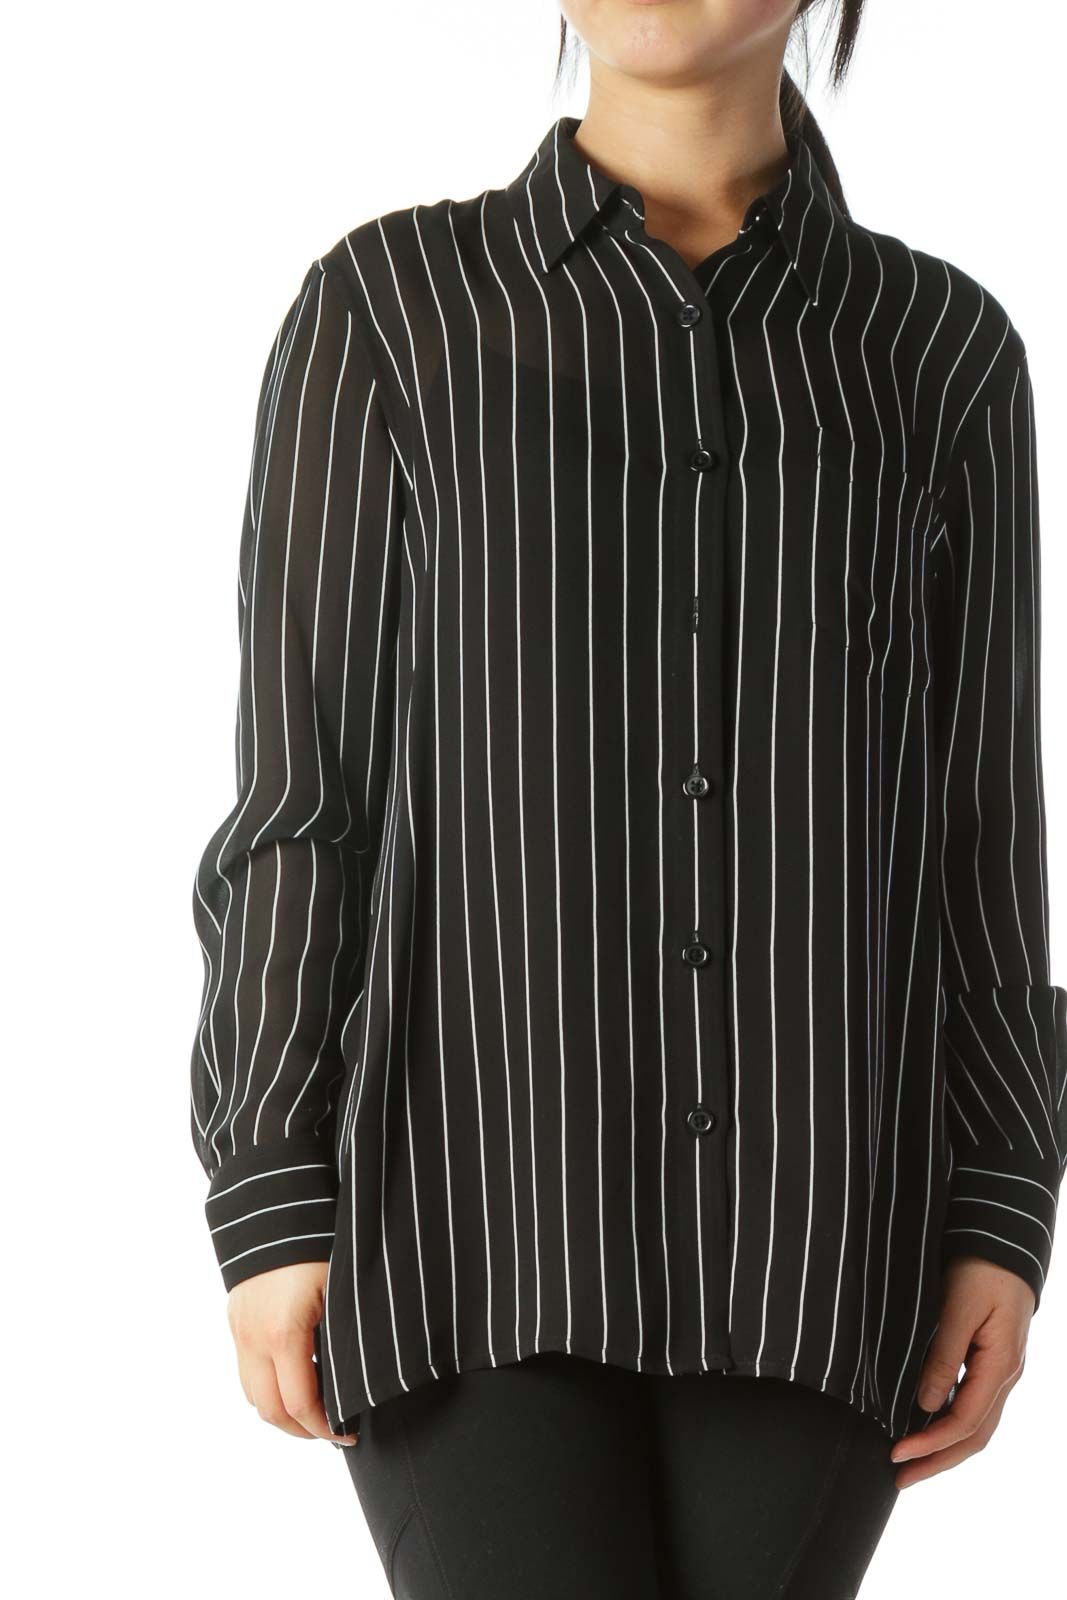 Black White Pinstripe 100% Silk Pocketed Shirt